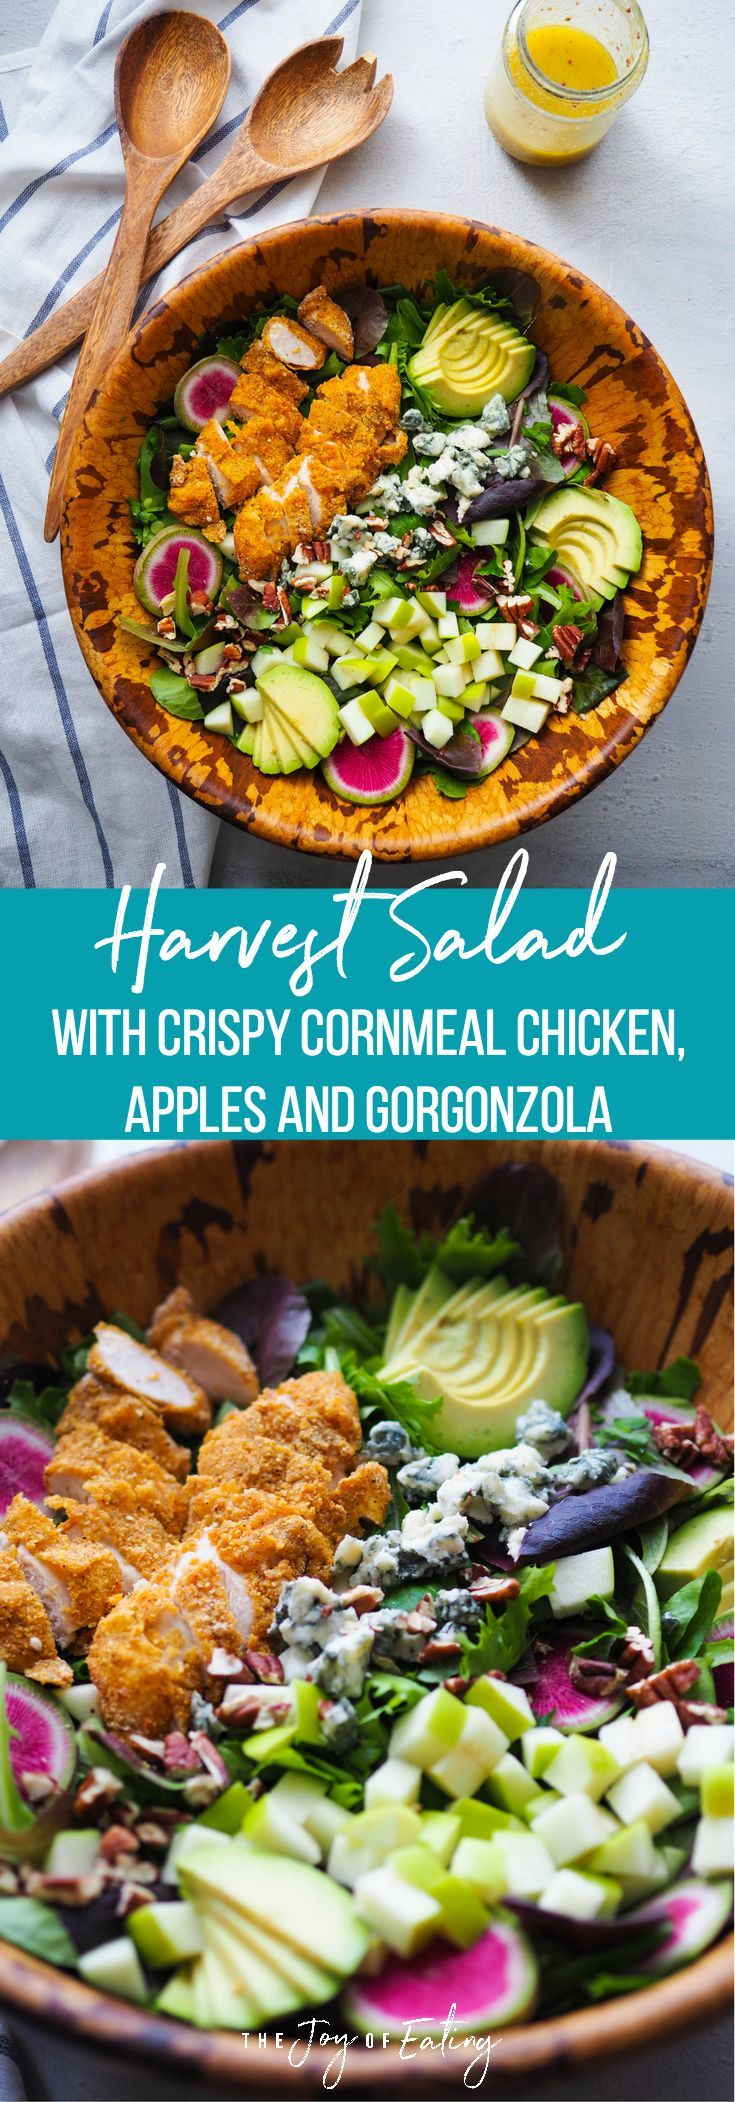 360 best Scrumptious Healthy Salads images on Pinterest | Fodmap ...